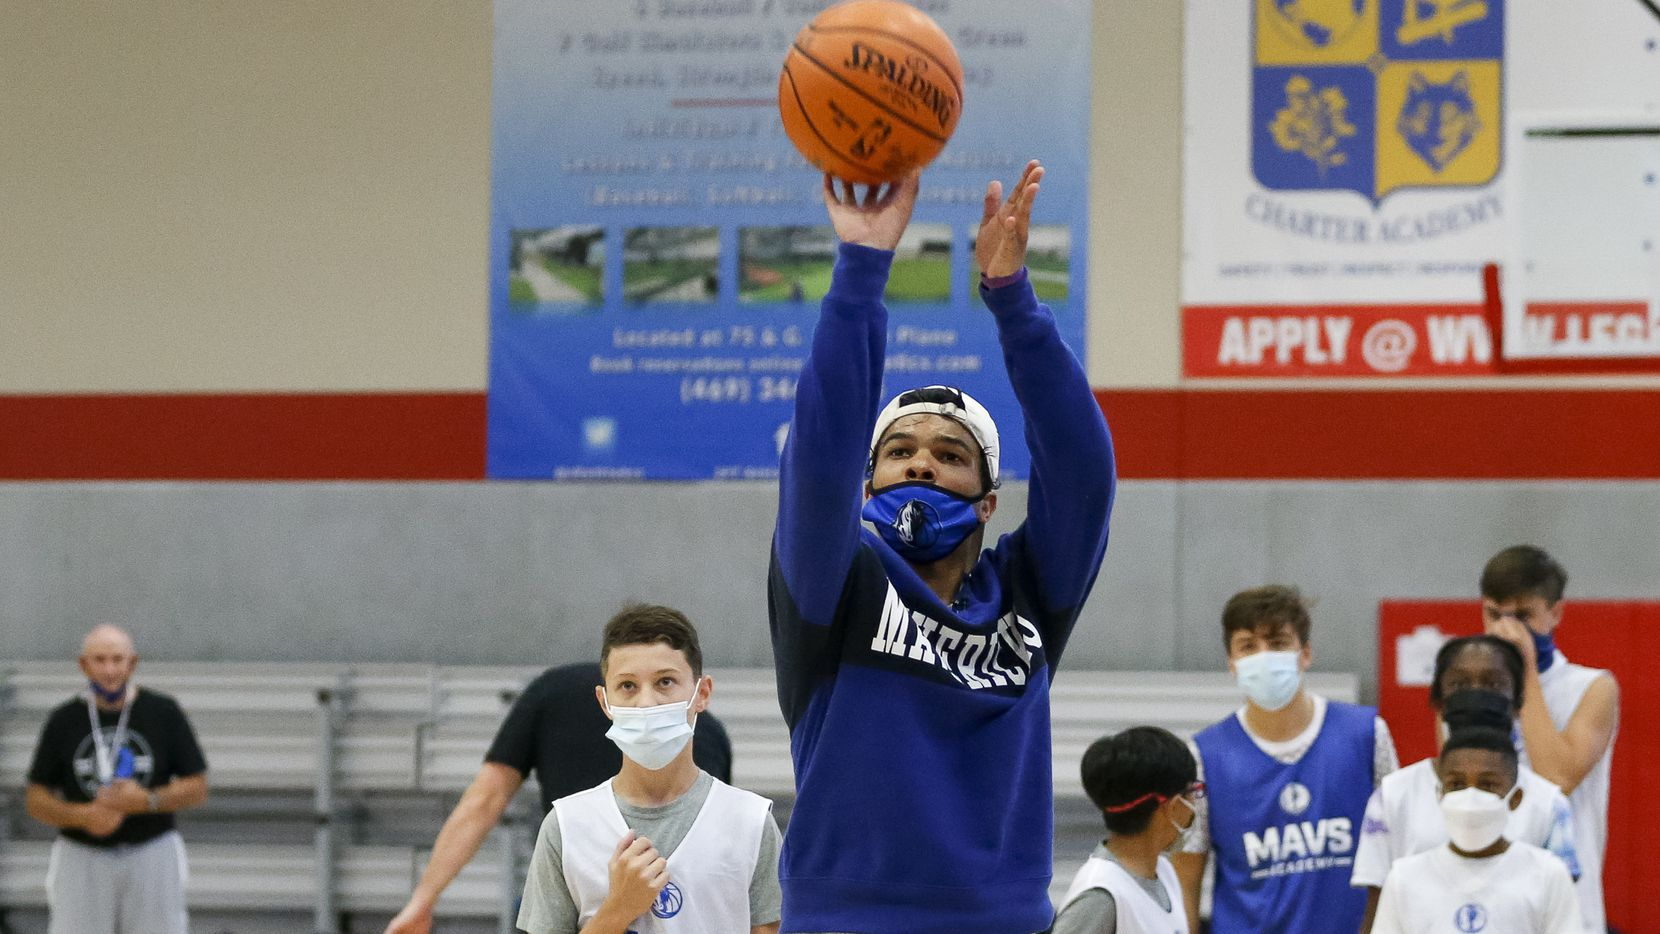 Dallas Mavericks guard Tyrell Terry puts up a shot during a game of knockout at a Mavs Academy Hoop Camp at Plano Sports Authority on Thursday, July 8, 2021, in Plano, Texas.